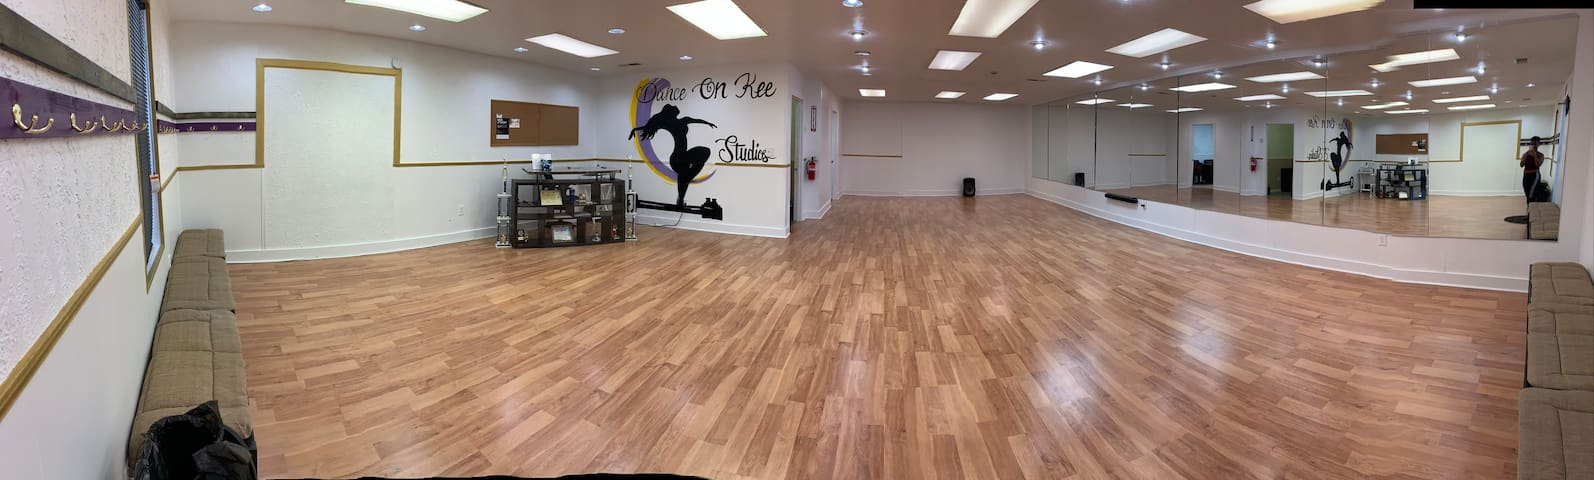 Dance Studio Rental (3 hrs plus 1 hour setup)